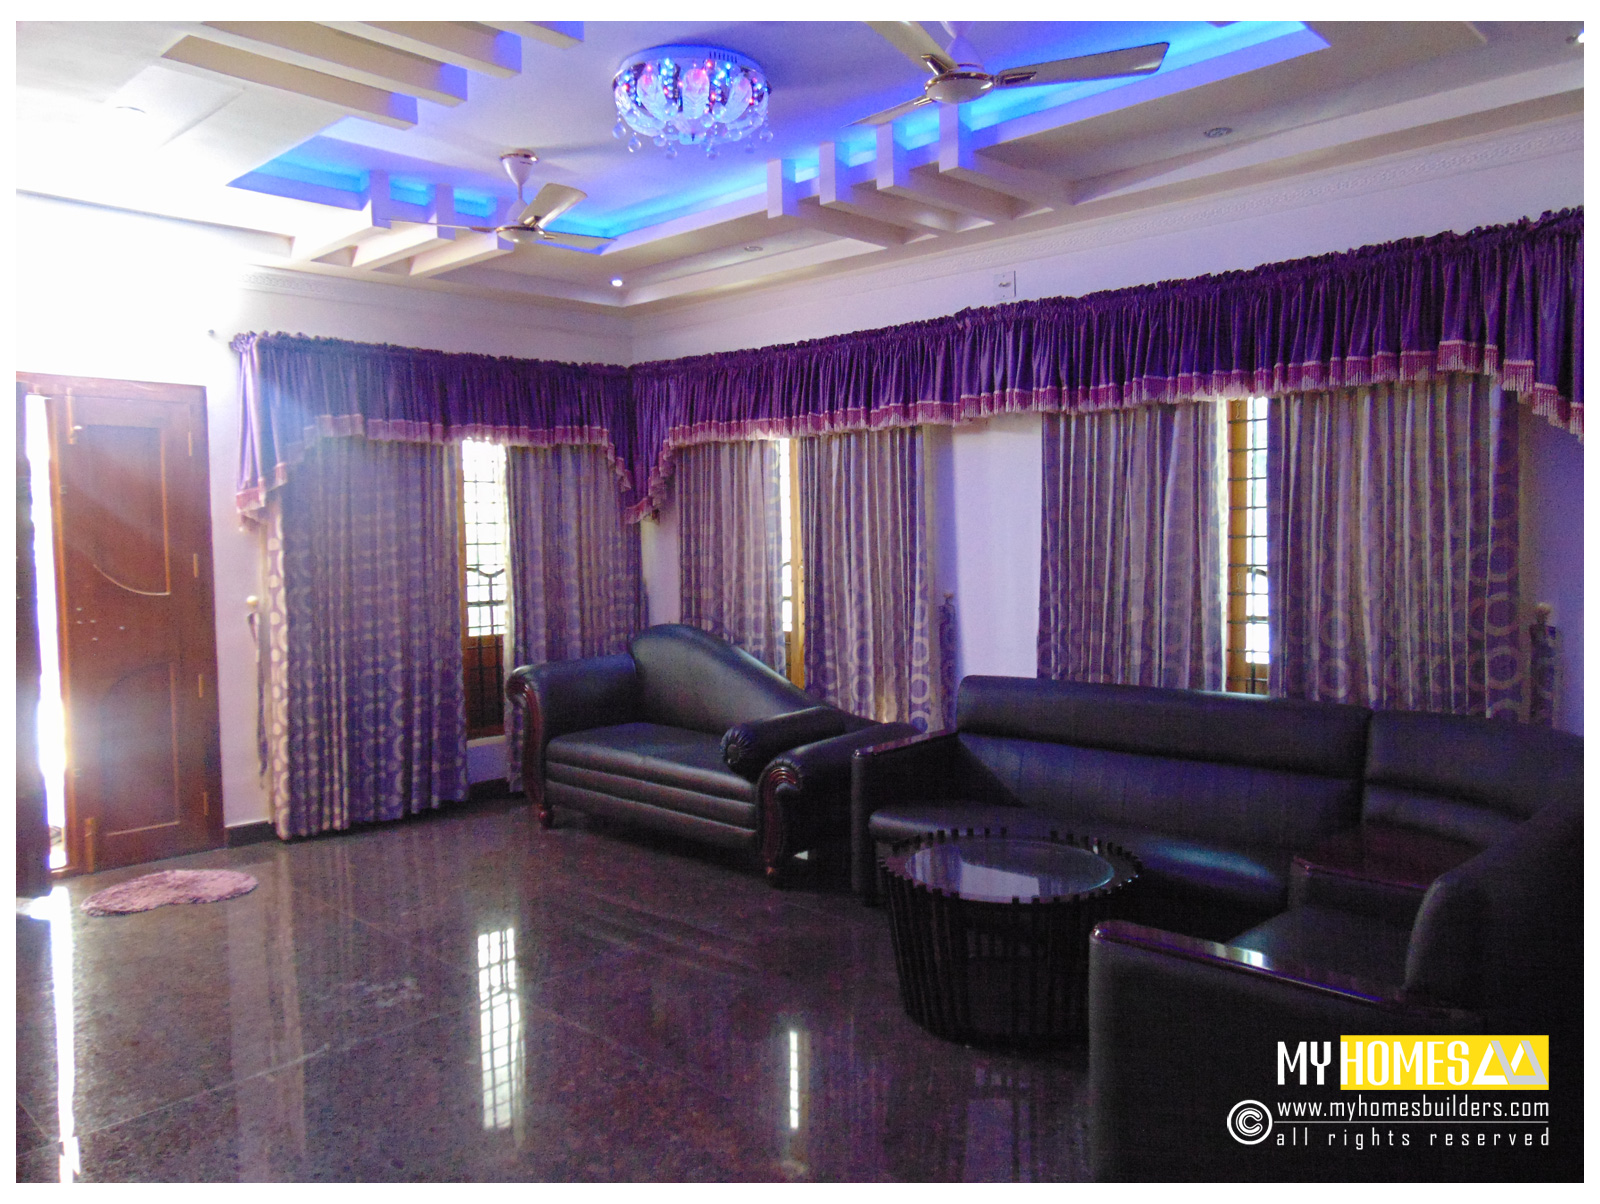 Living room Interior Design inkerala, Kerala Homes living, living room designs rooms interior,